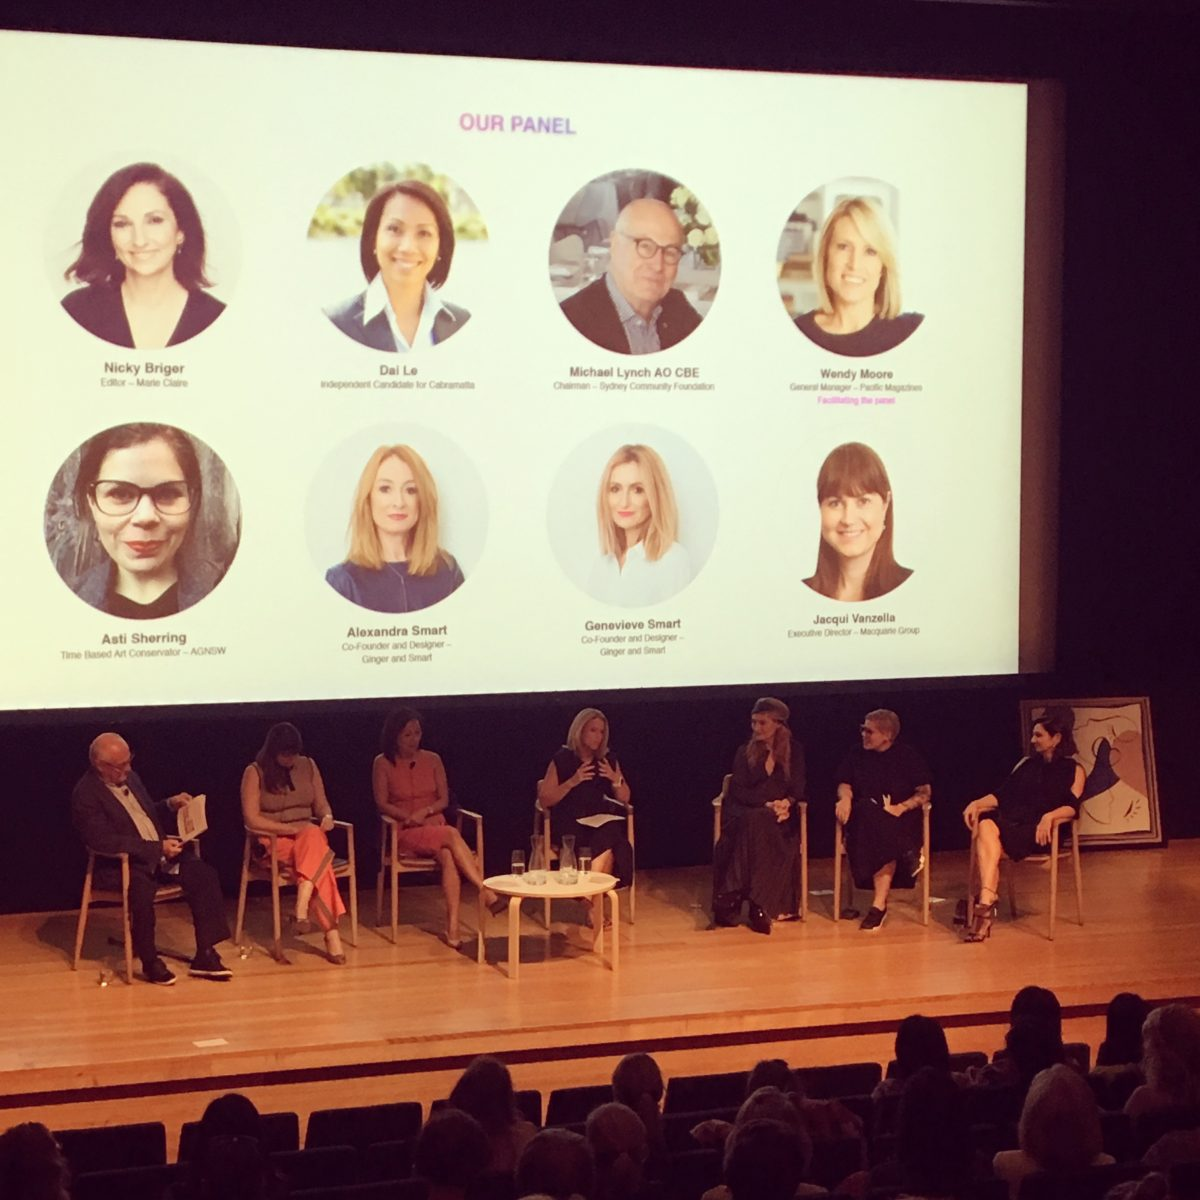 Sydney Women's Fund, Art Gallery NSW, AGNSW Fearless, Nicky Briger, Pacific Magazines, Michael Lynch, Macquarie Group